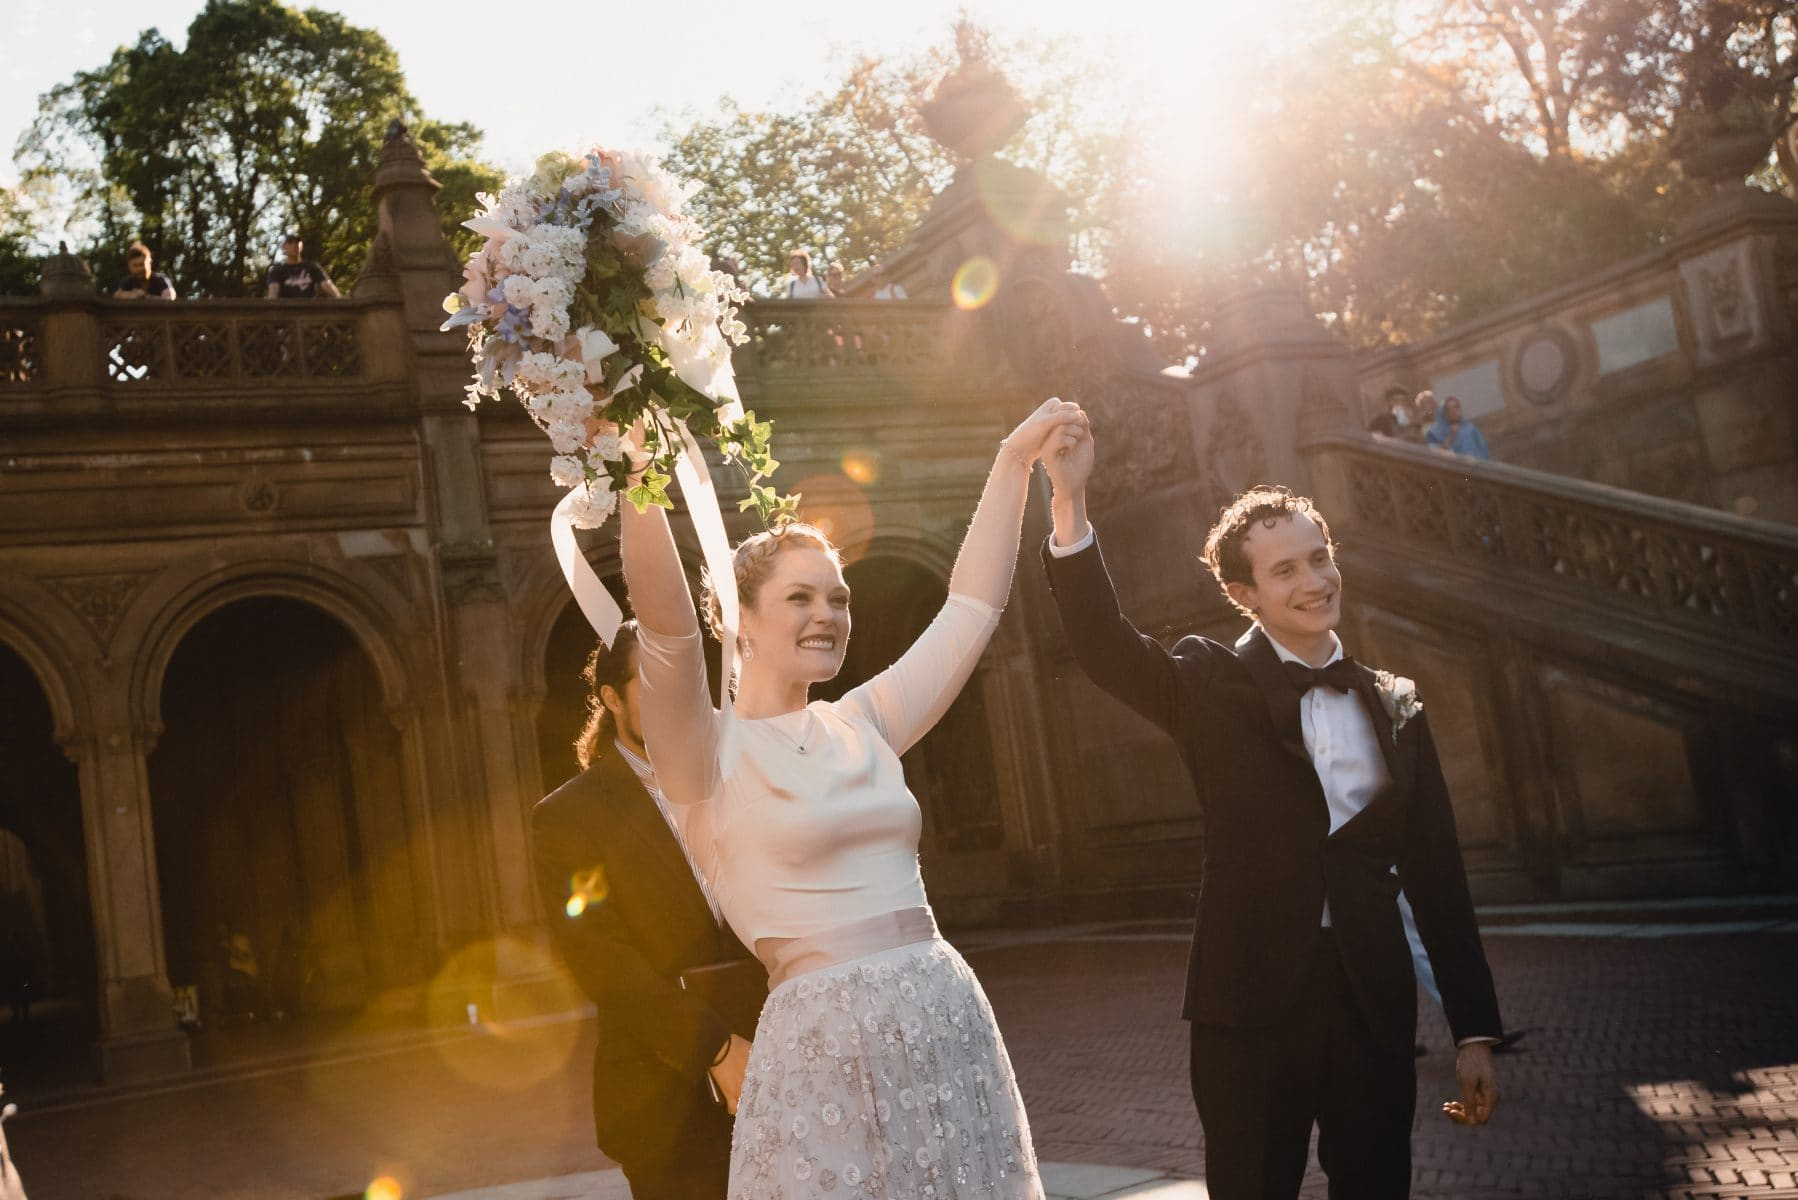 Central Park Elopement Wedding photos